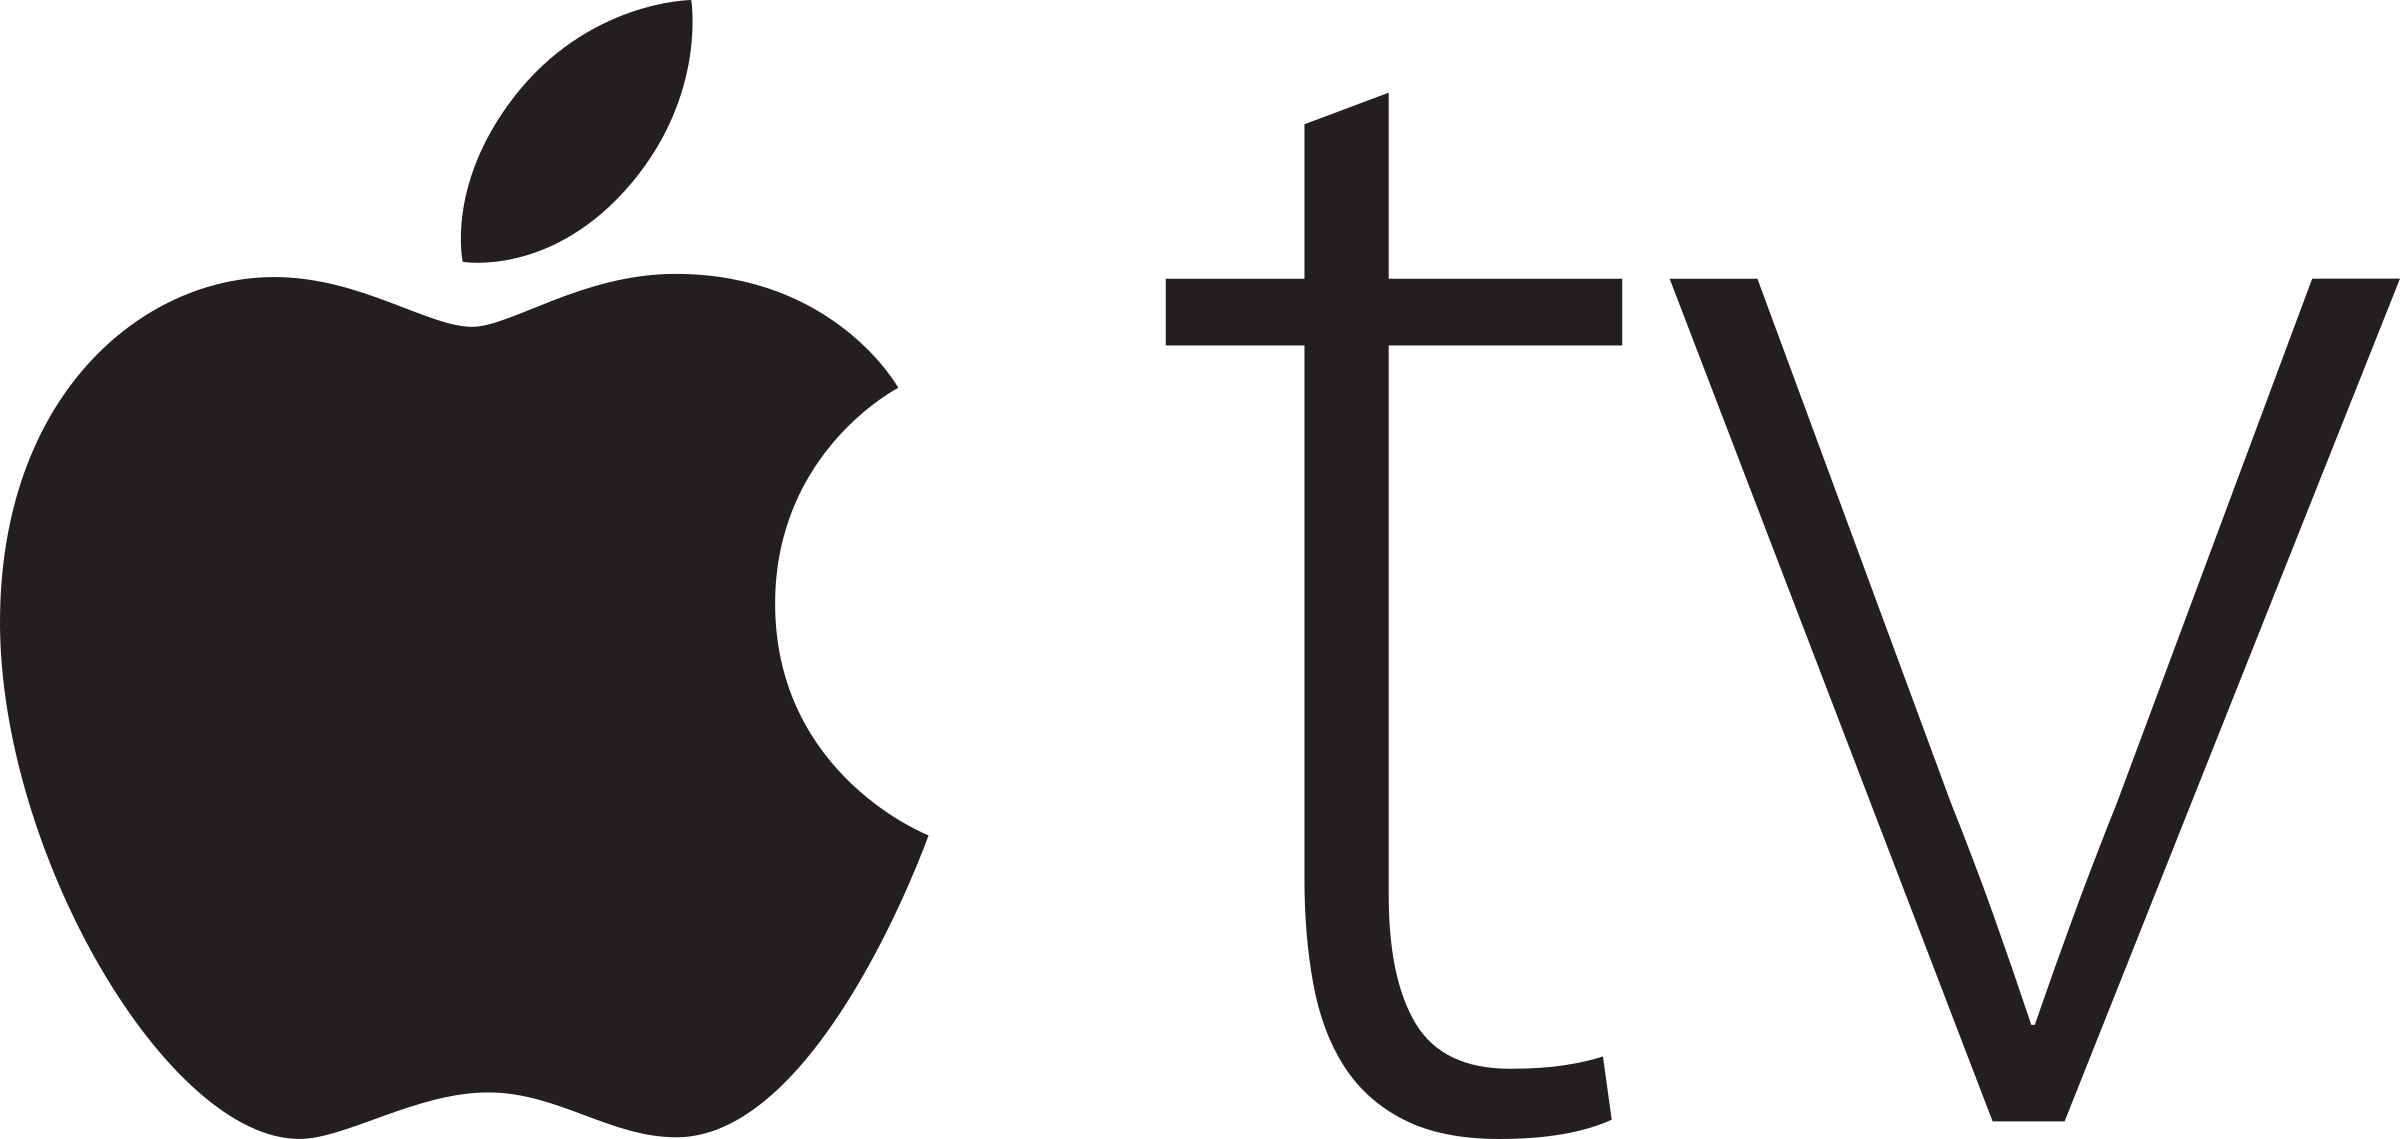 Tv logo png. Apple transparent svg vector